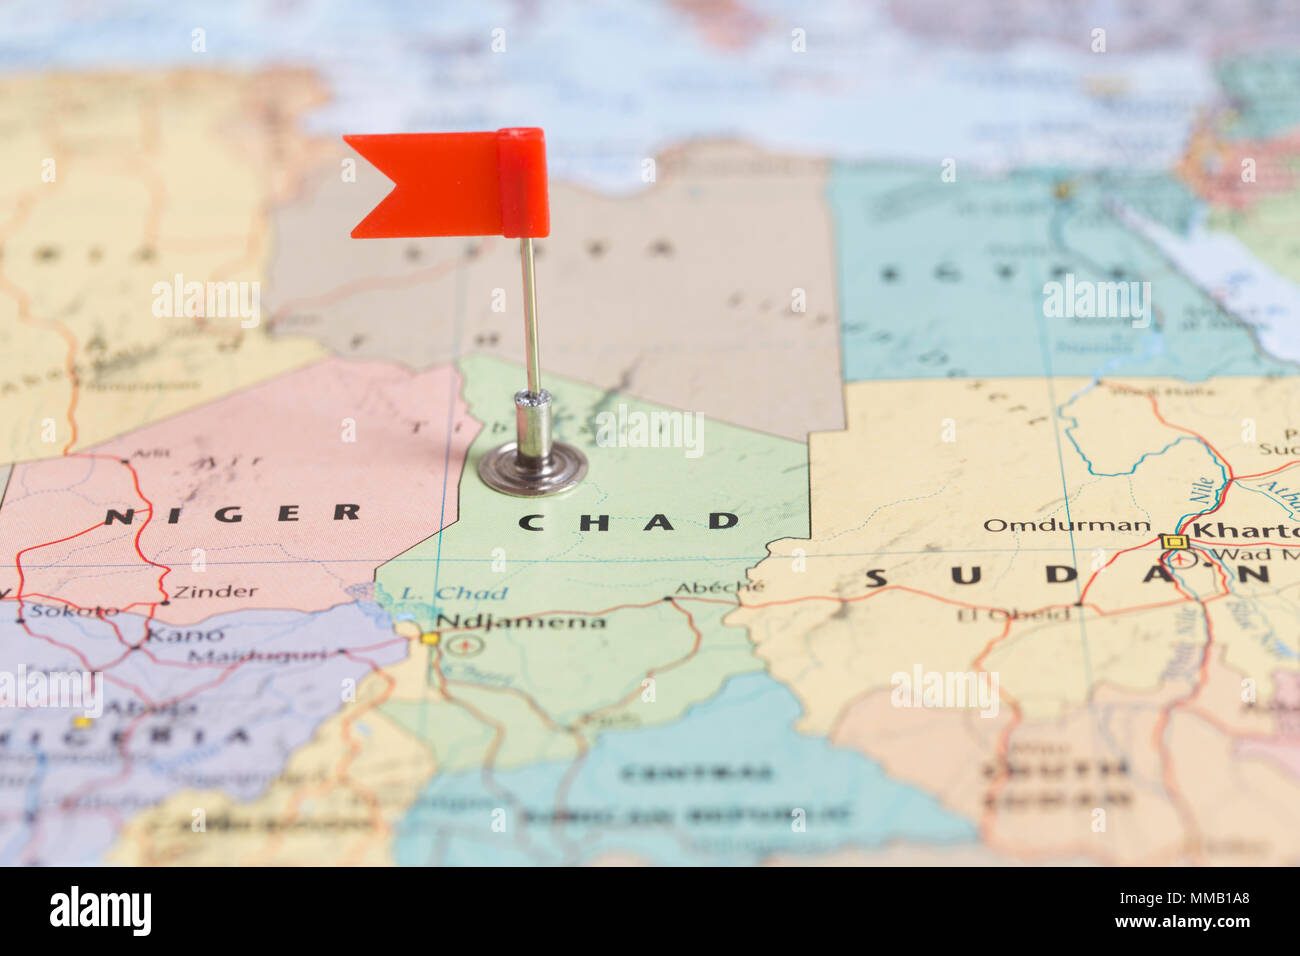 Small red flag marking the African country of  Chad on a world map. - Stock Image